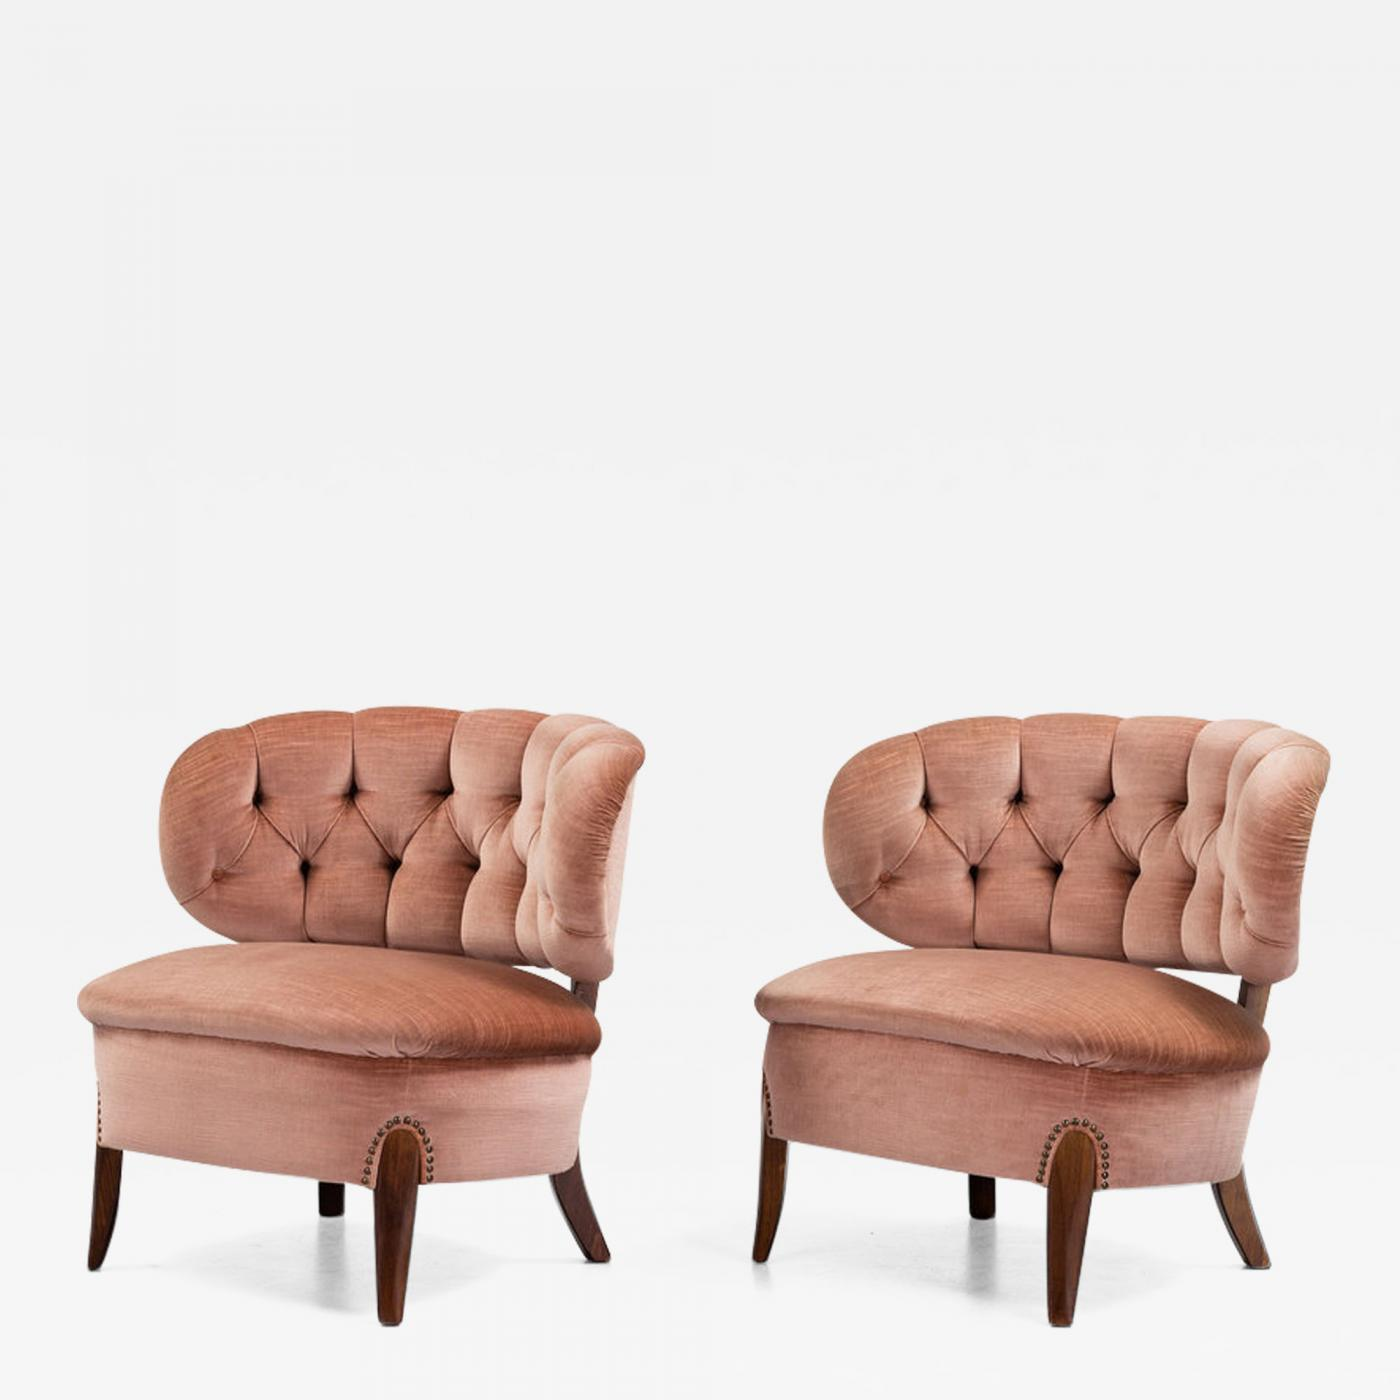 Phenomenal Otto Schulz Pair Of Scandinavian Modern Pink Velvet Easy Chairs By Otto Schulz 1950S Beatyapartments Chair Design Images Beatyapartmentscom